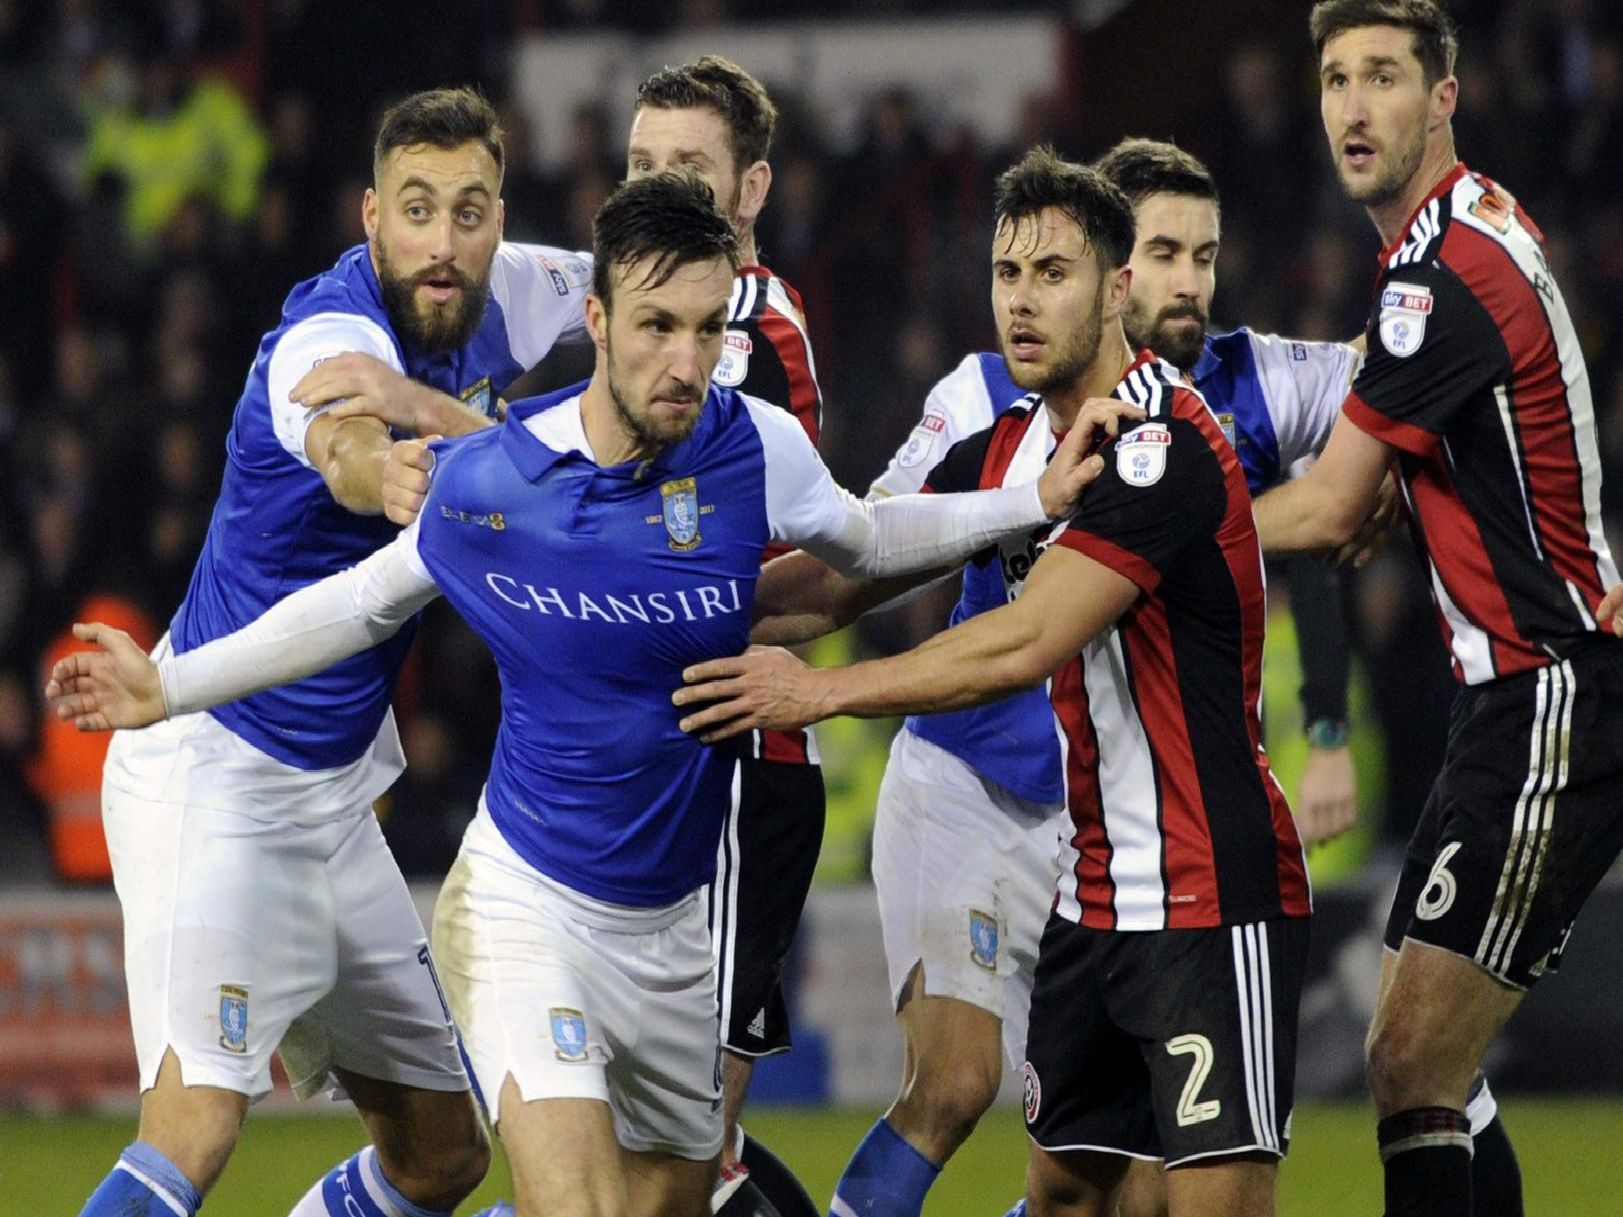 The second Steel City Derby installment takes place on March 2 when Sheffield Wednesday face Sheffield United at Hillsborough.